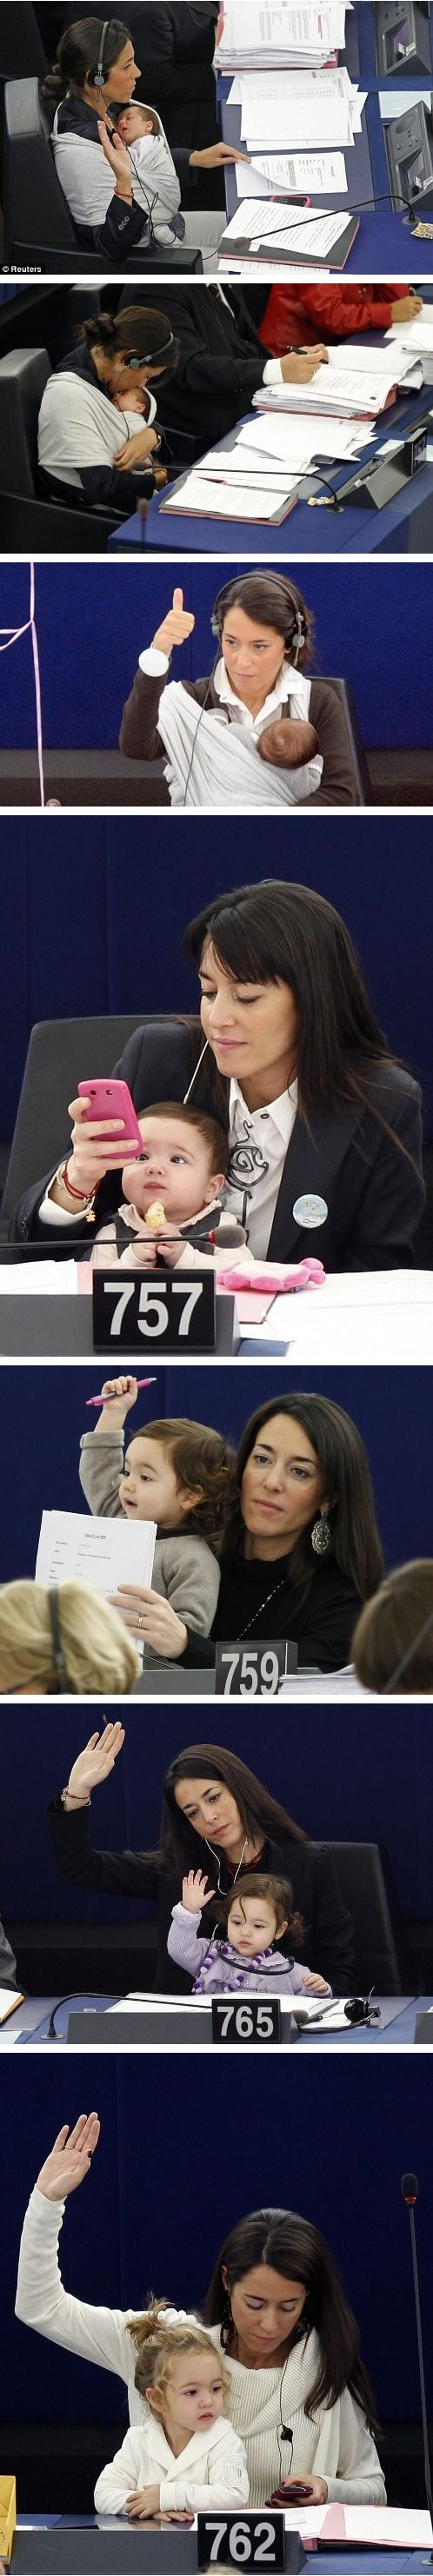 Licia Ronzulli, member of the European Parliament, has been taking her daughter Vittoria to the Parliament sessions for two years now.